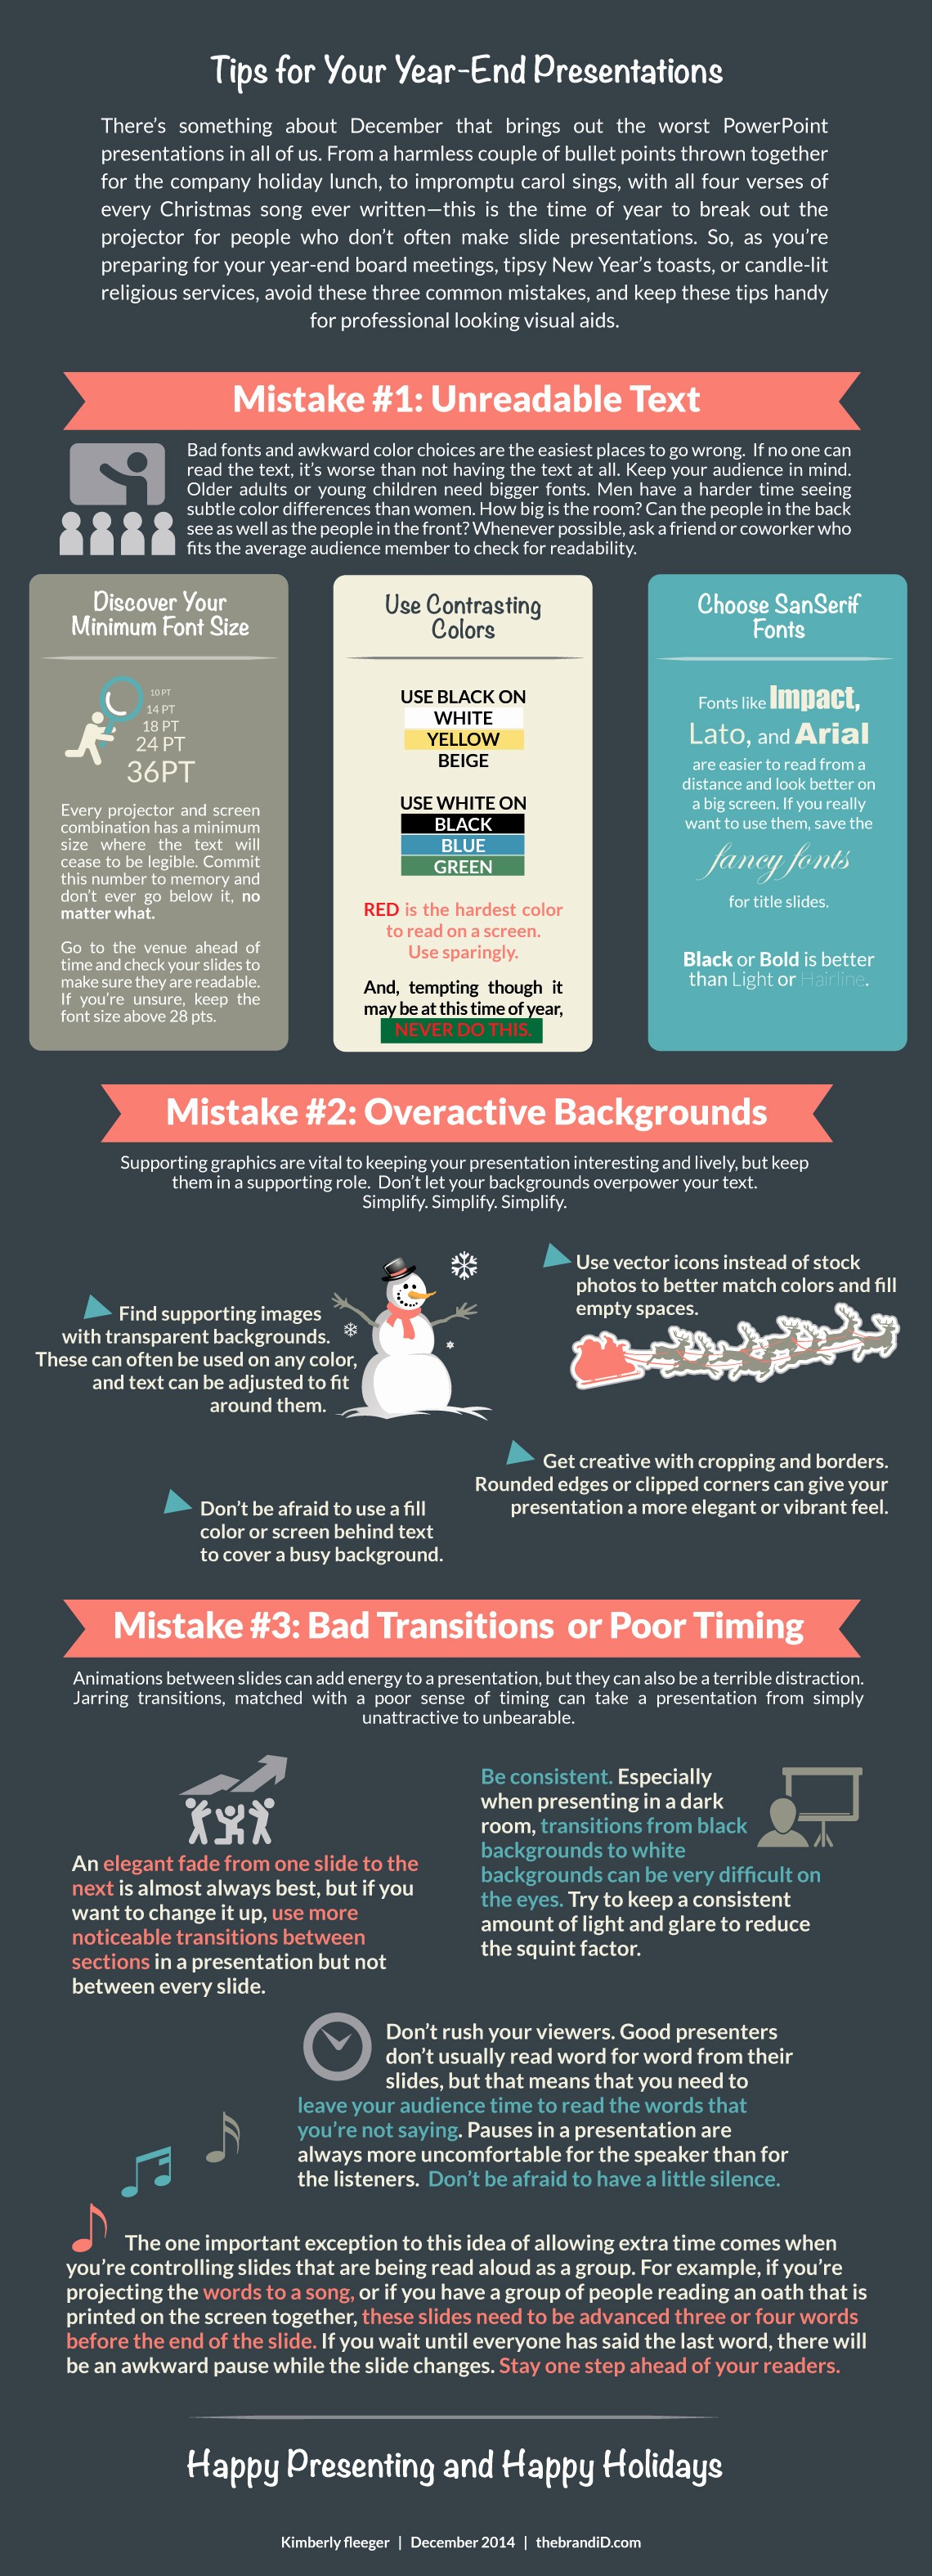 End Of the Year Slideshow Luxury Year End Presentation Tips Infographic